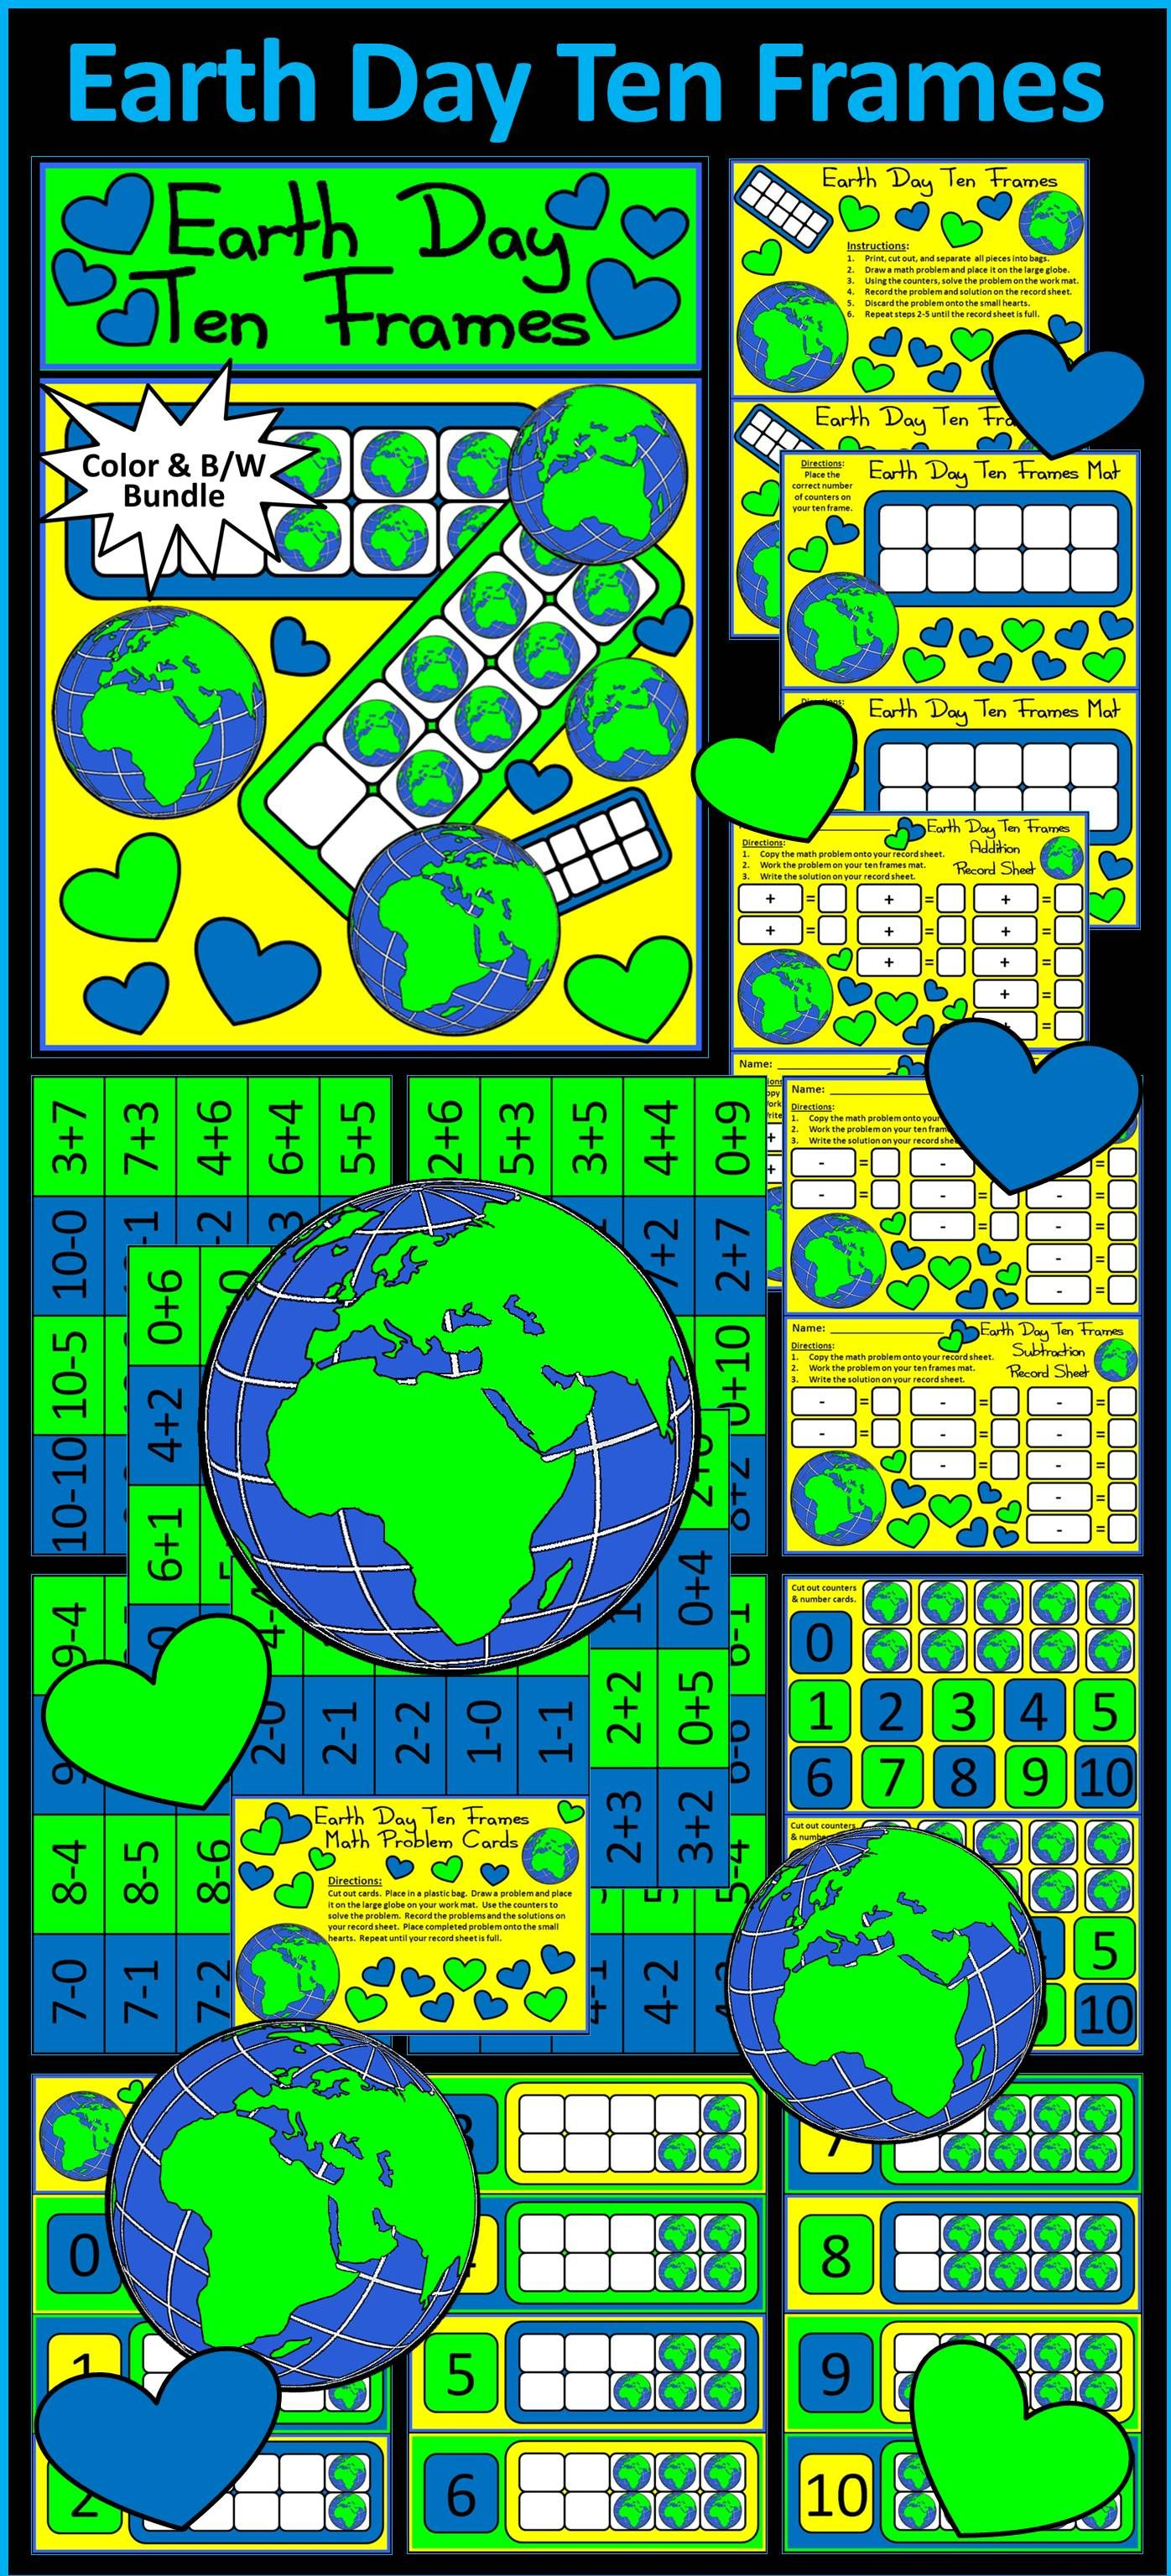 Earth Day Activities Earth Day Ten Frames Math Activity